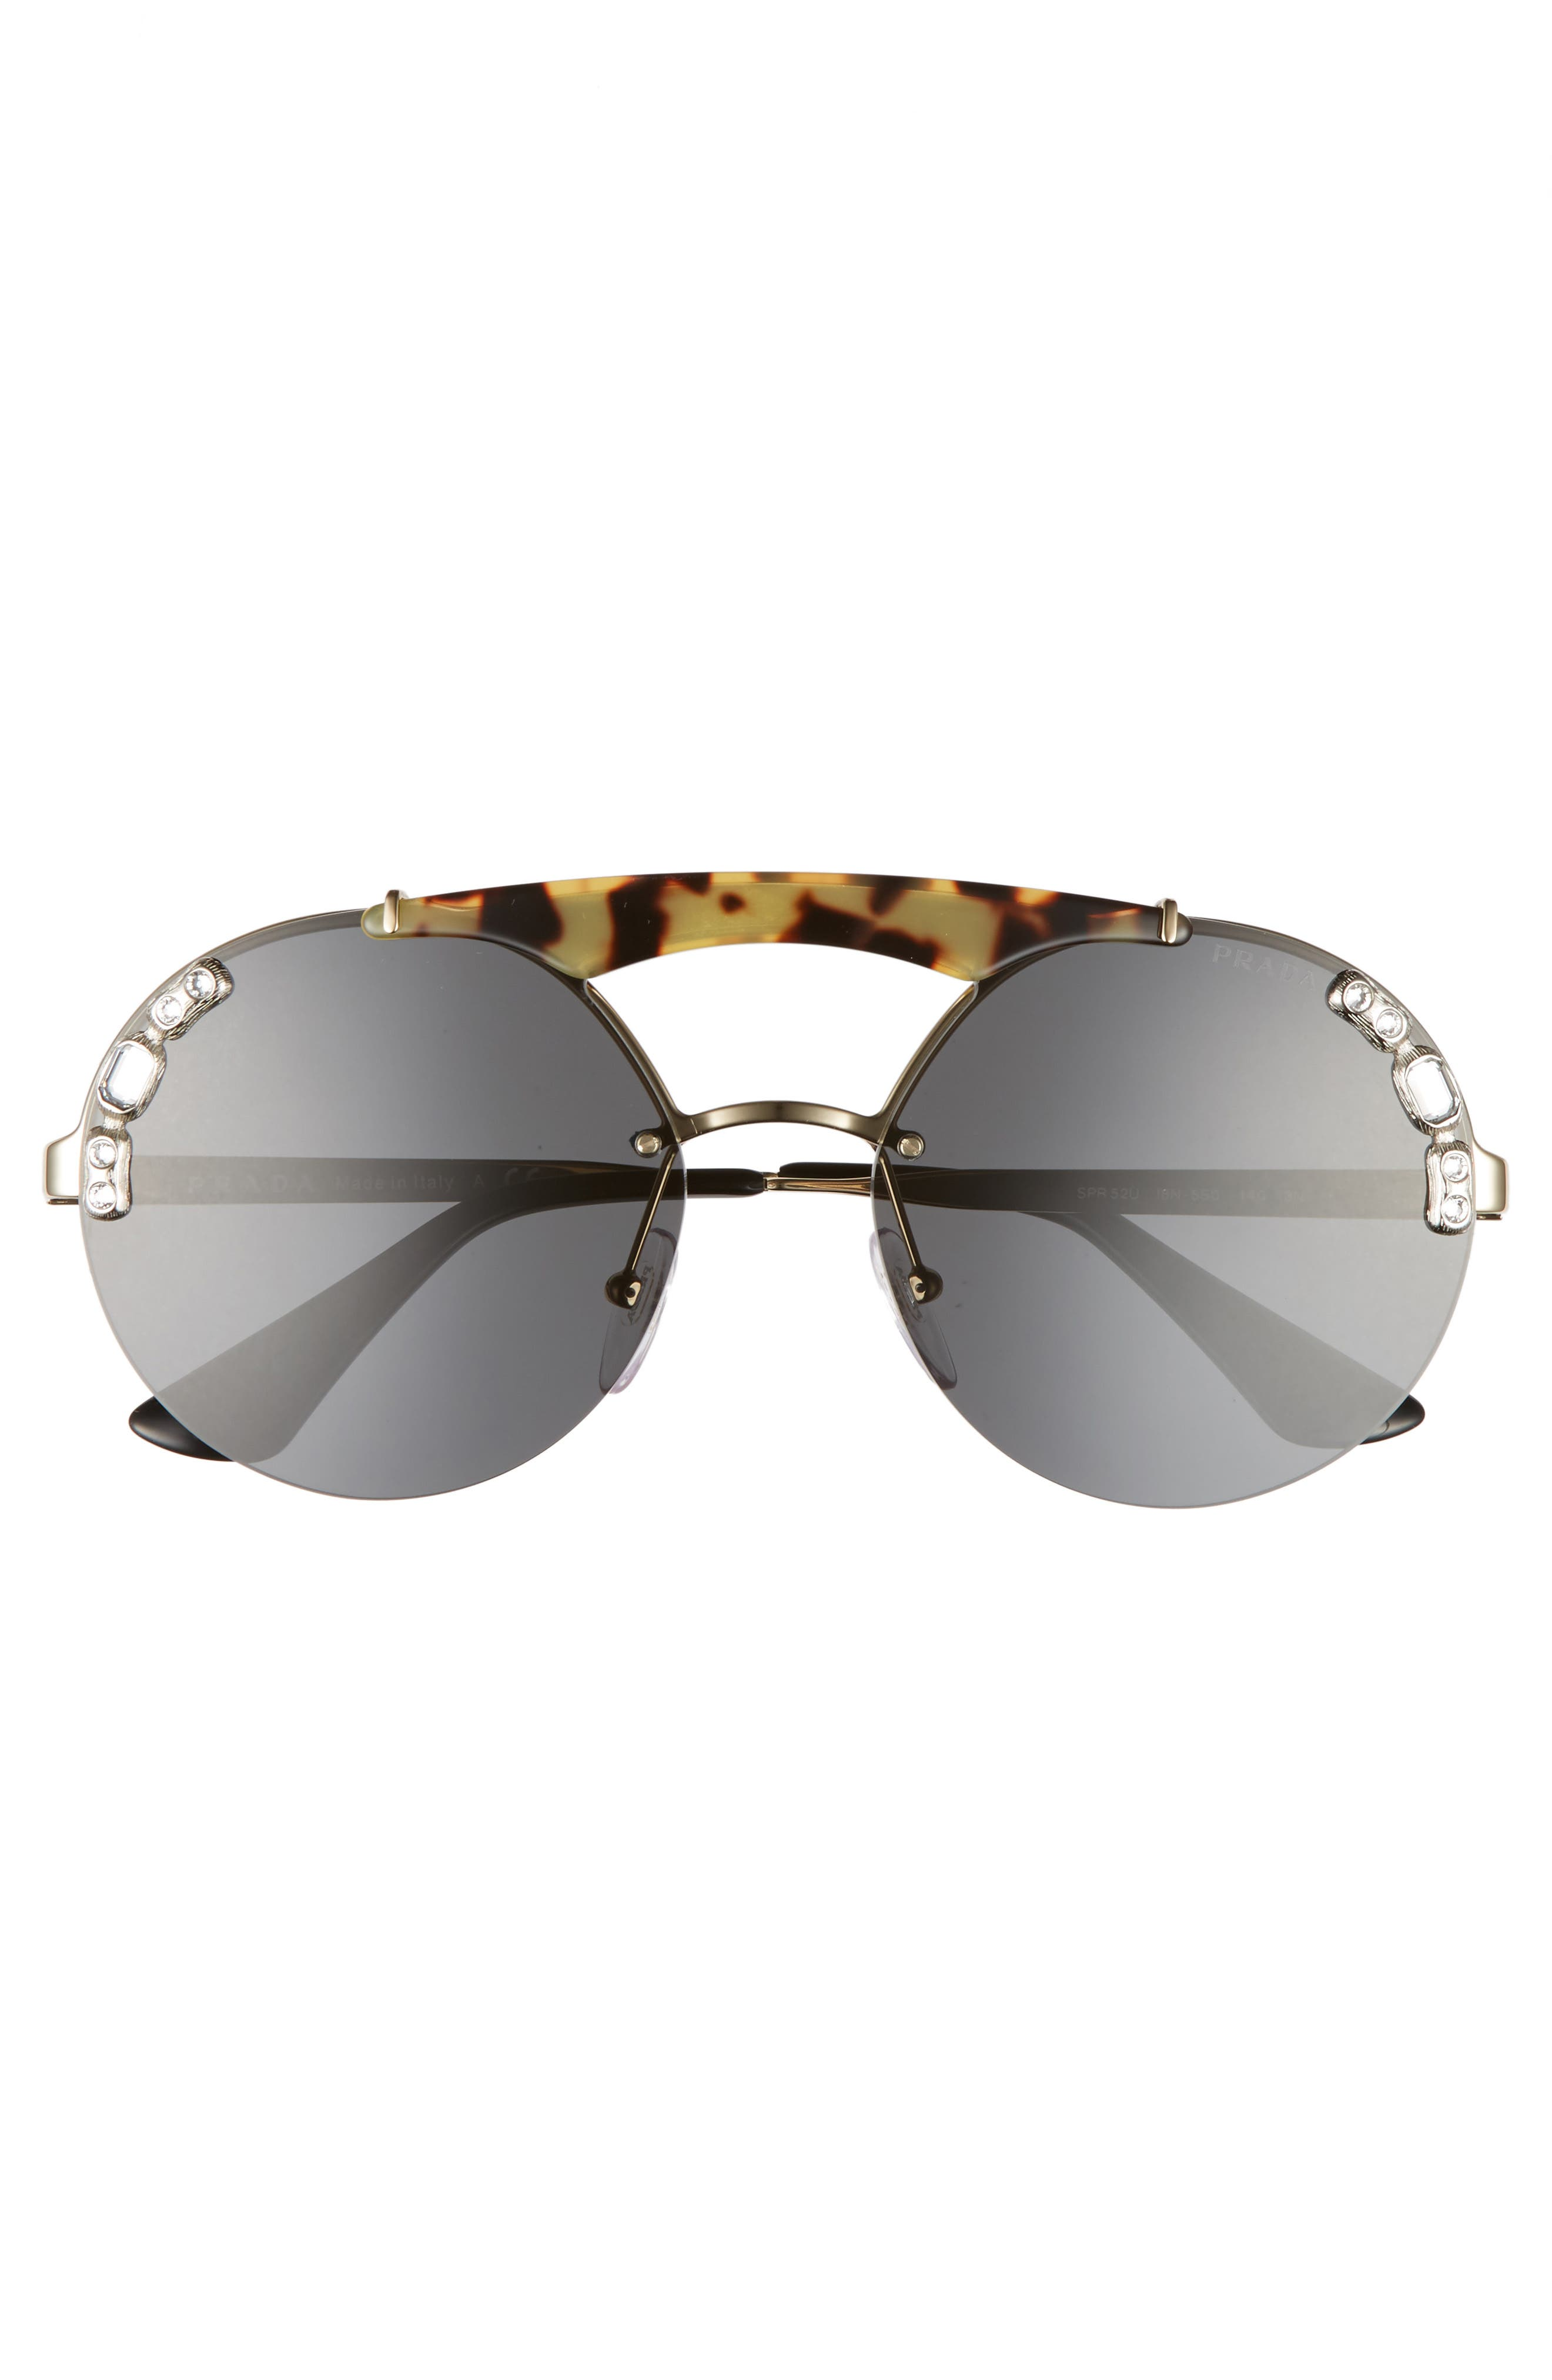 52mm Embellished Round Rimless Sunglasses,                             Alternate thumbnail 3, color,                             100